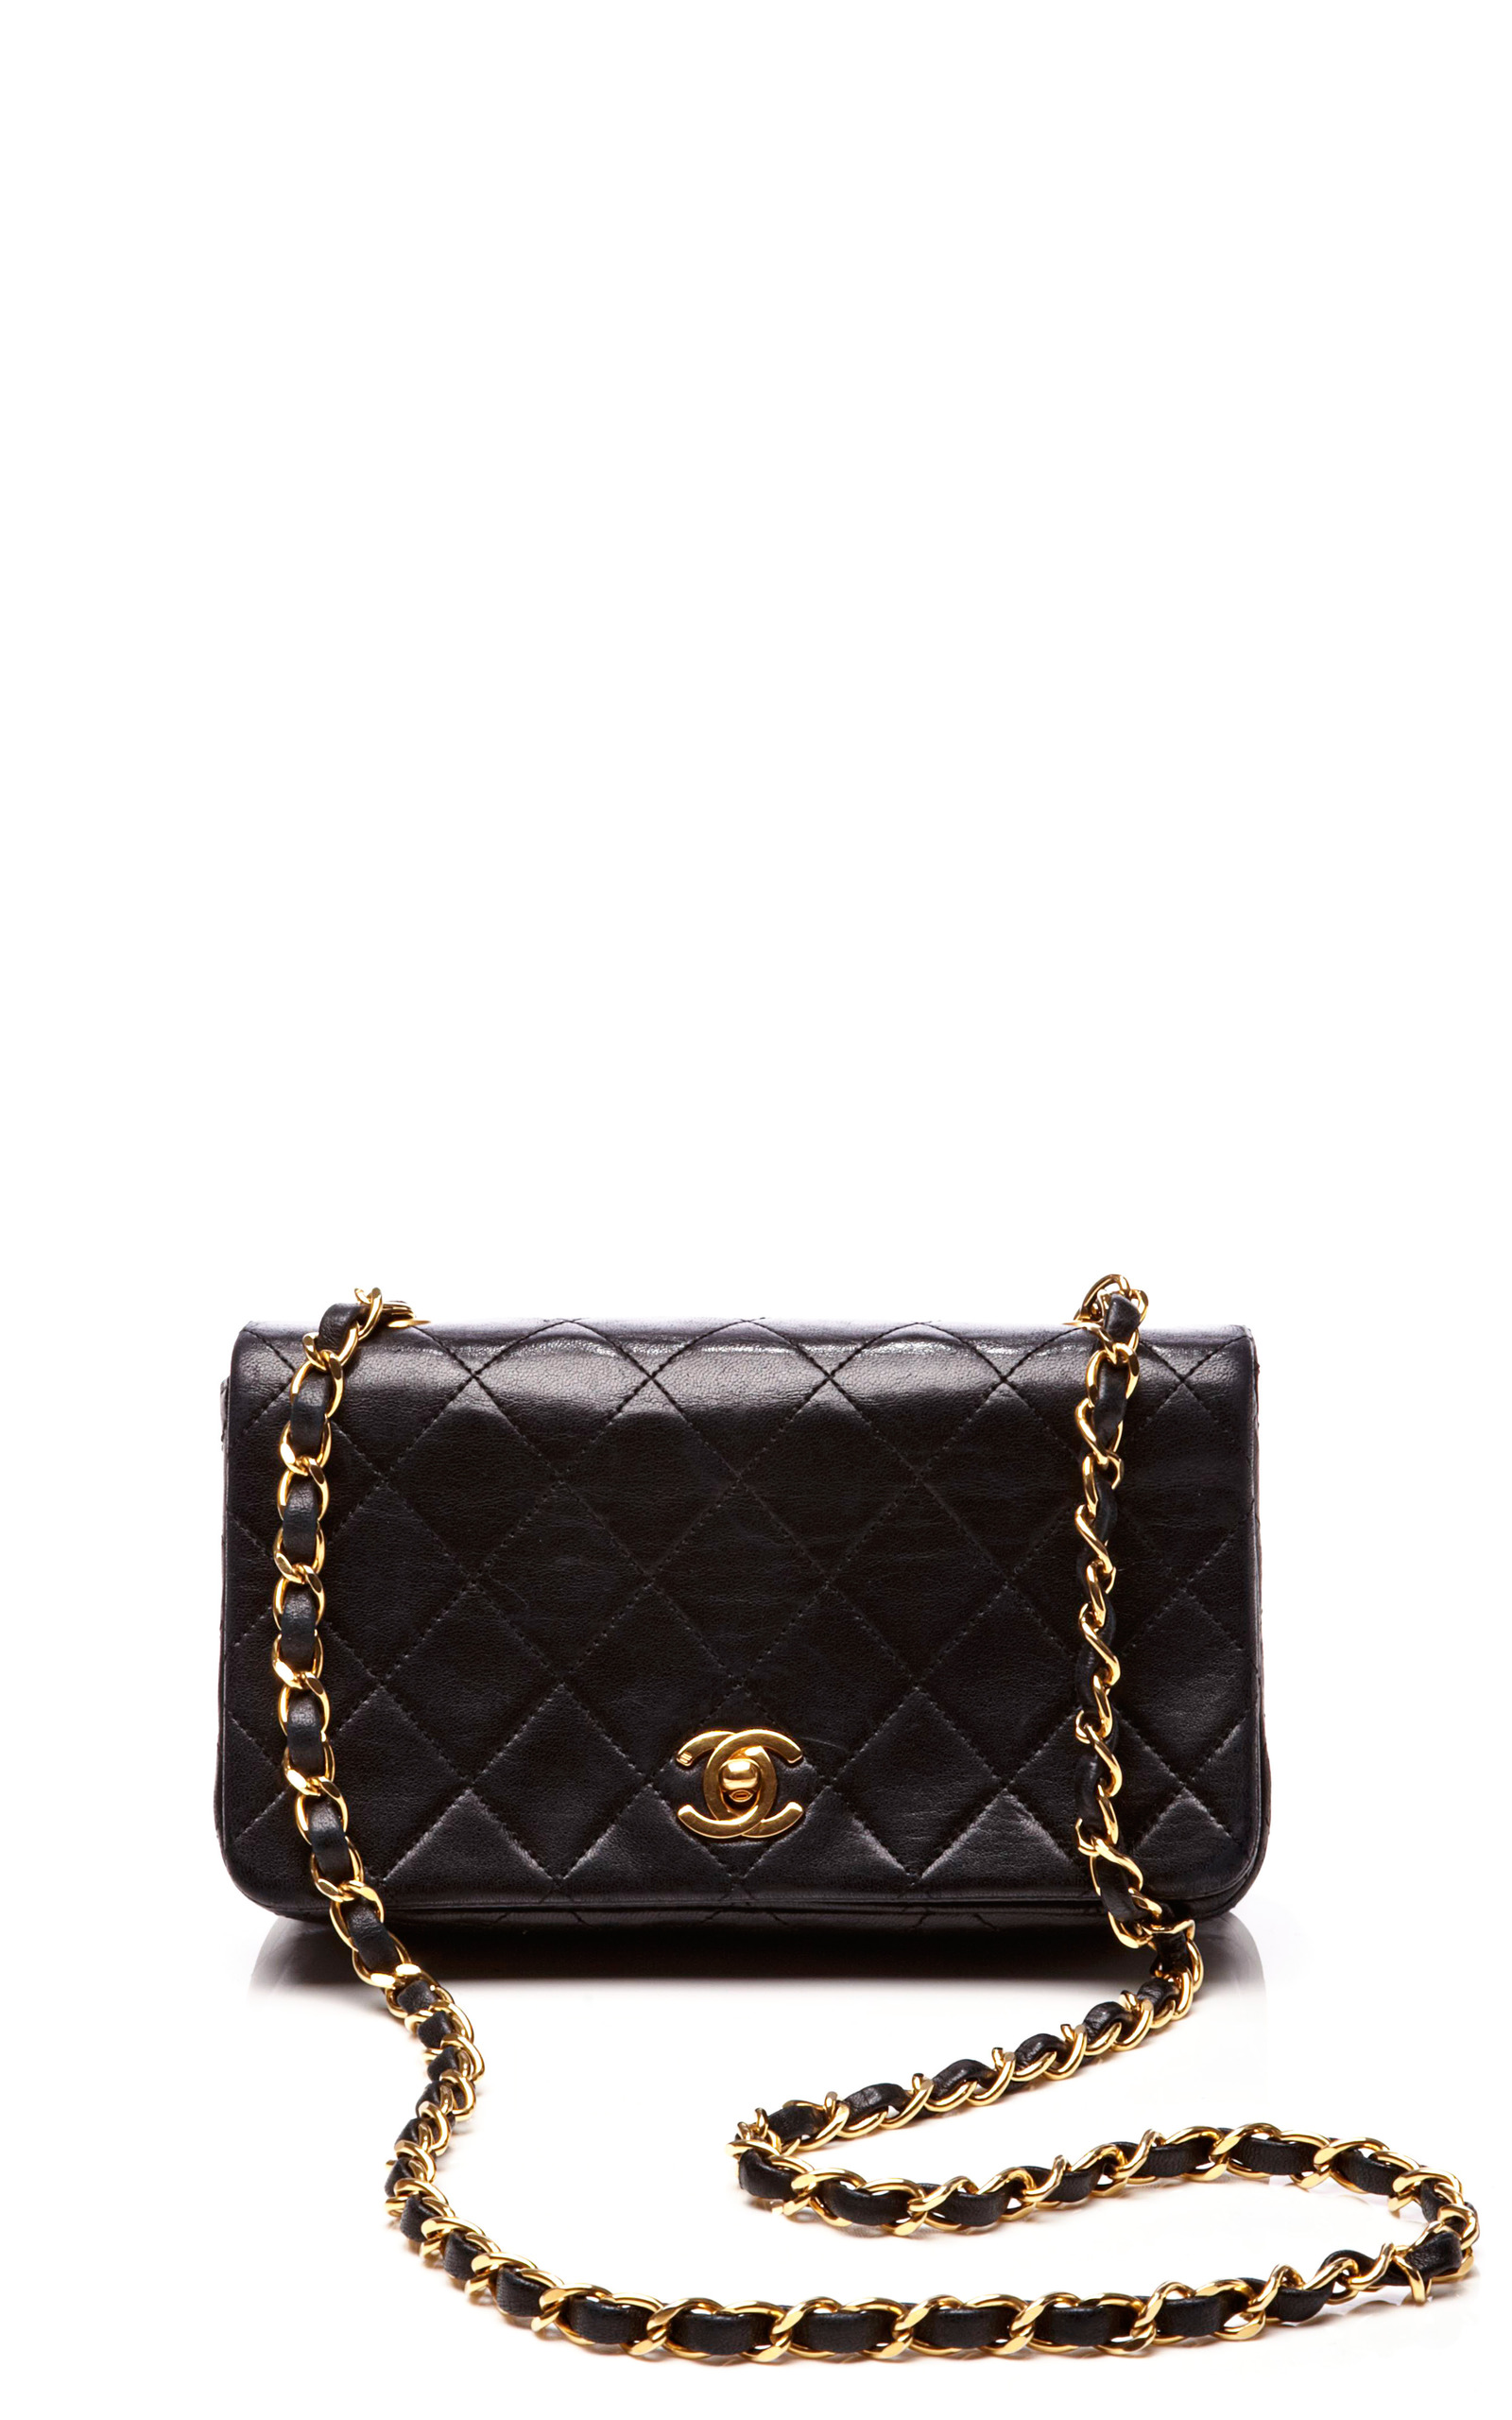 Chanel Black Quilted Lambskin Mini Single Flap Bag Moda